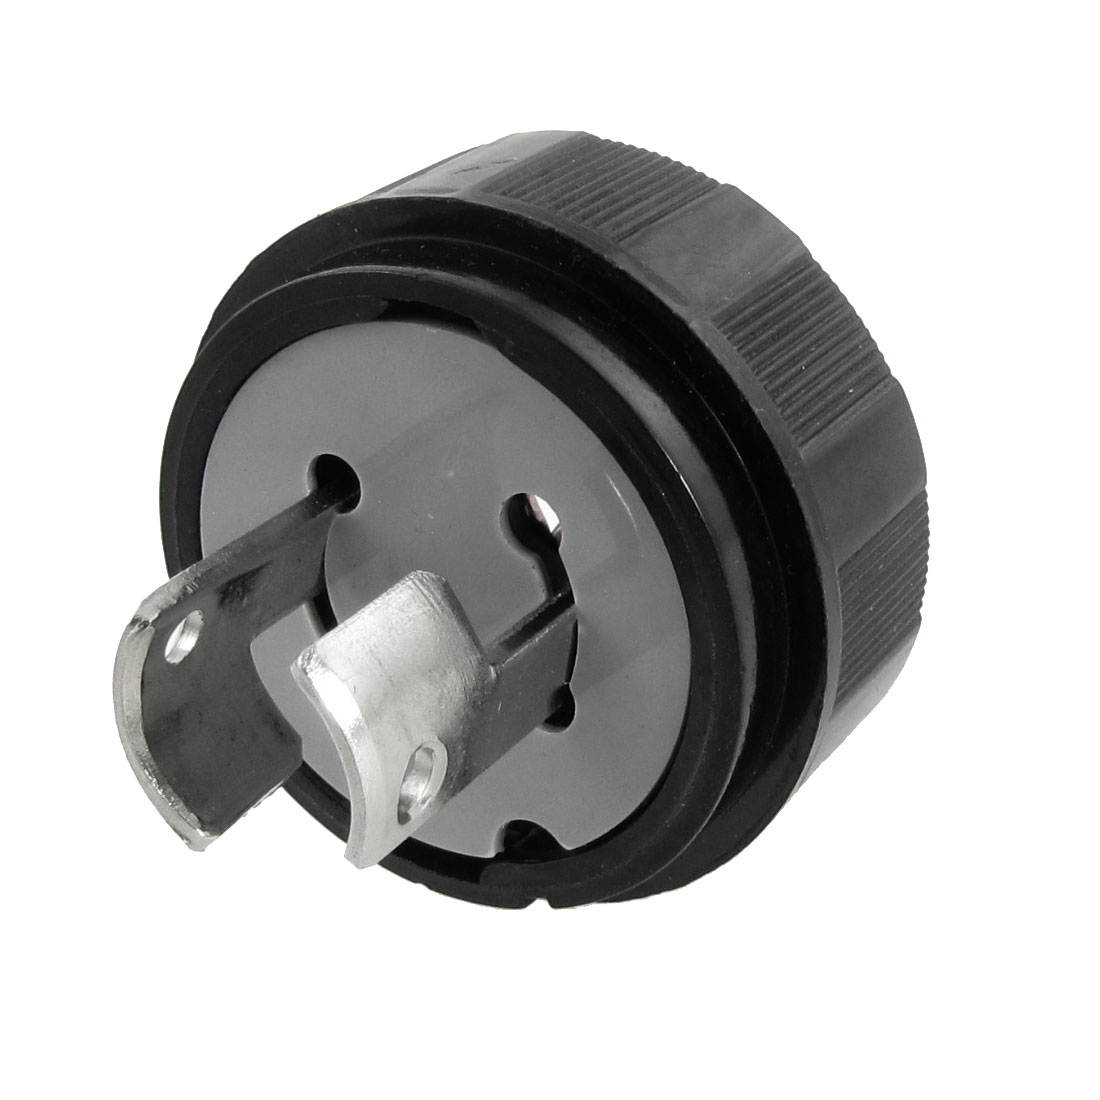 Black LK6220 20A 250VAC 2 Wire Locking Type Electrical Plug